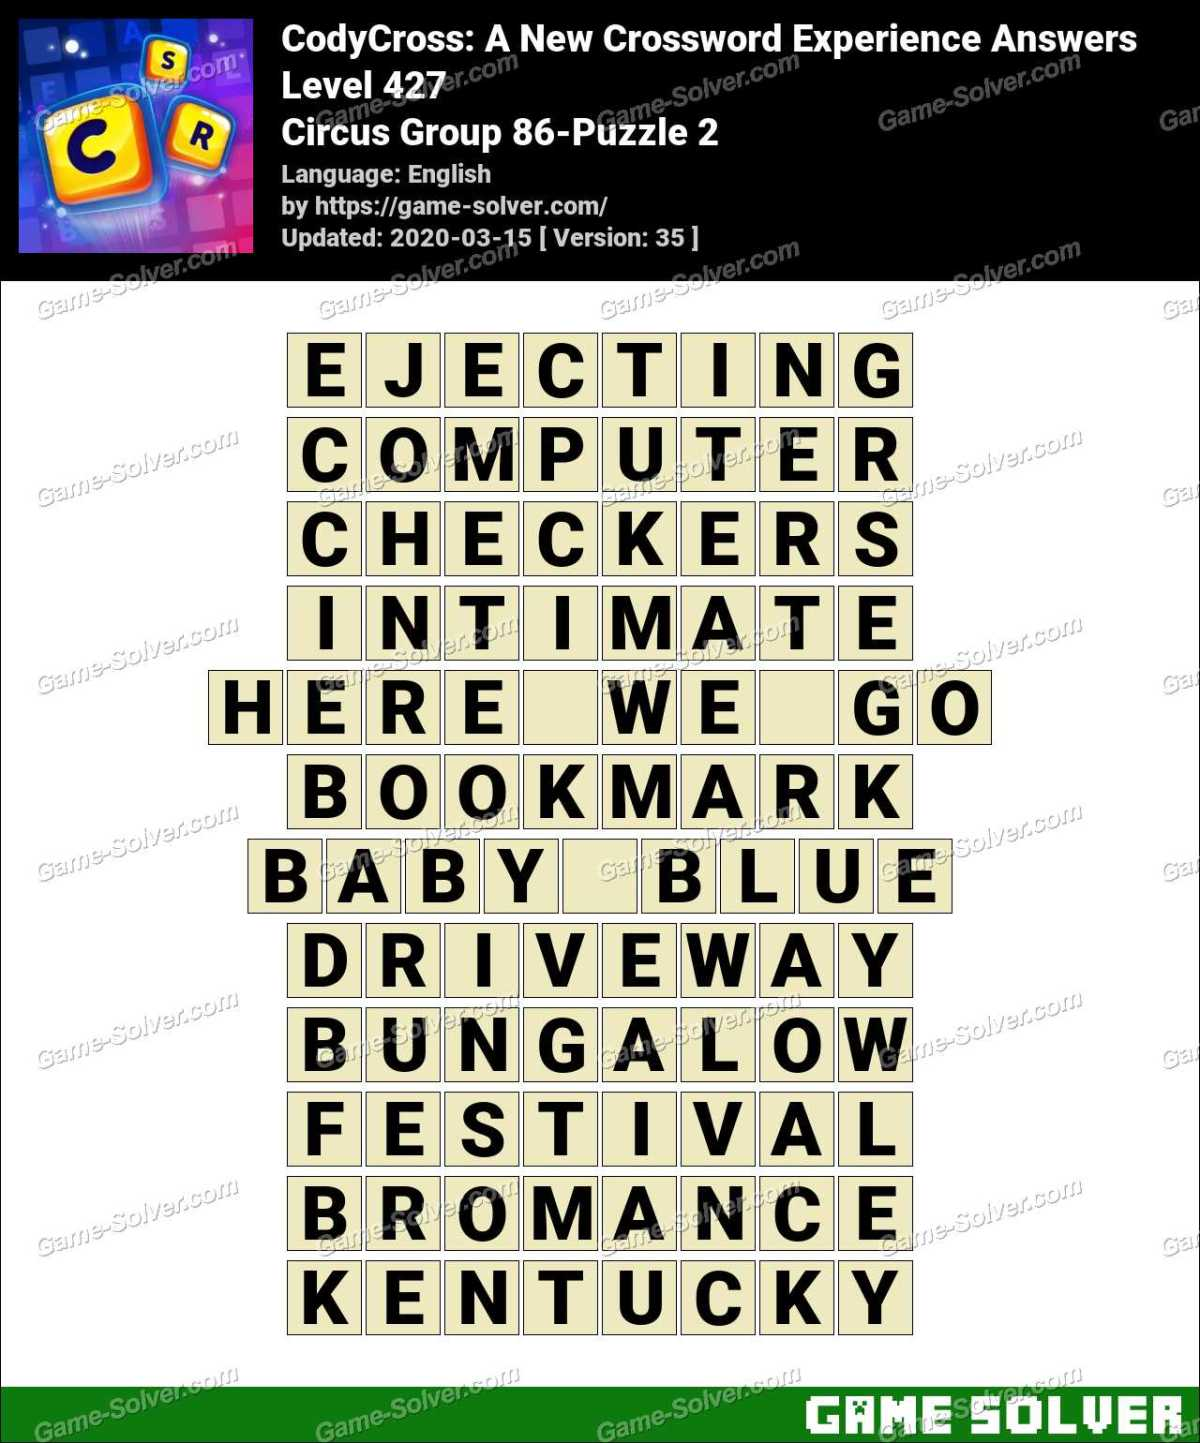 CodyCross Circus Group 86-Puzzle 2 Answers